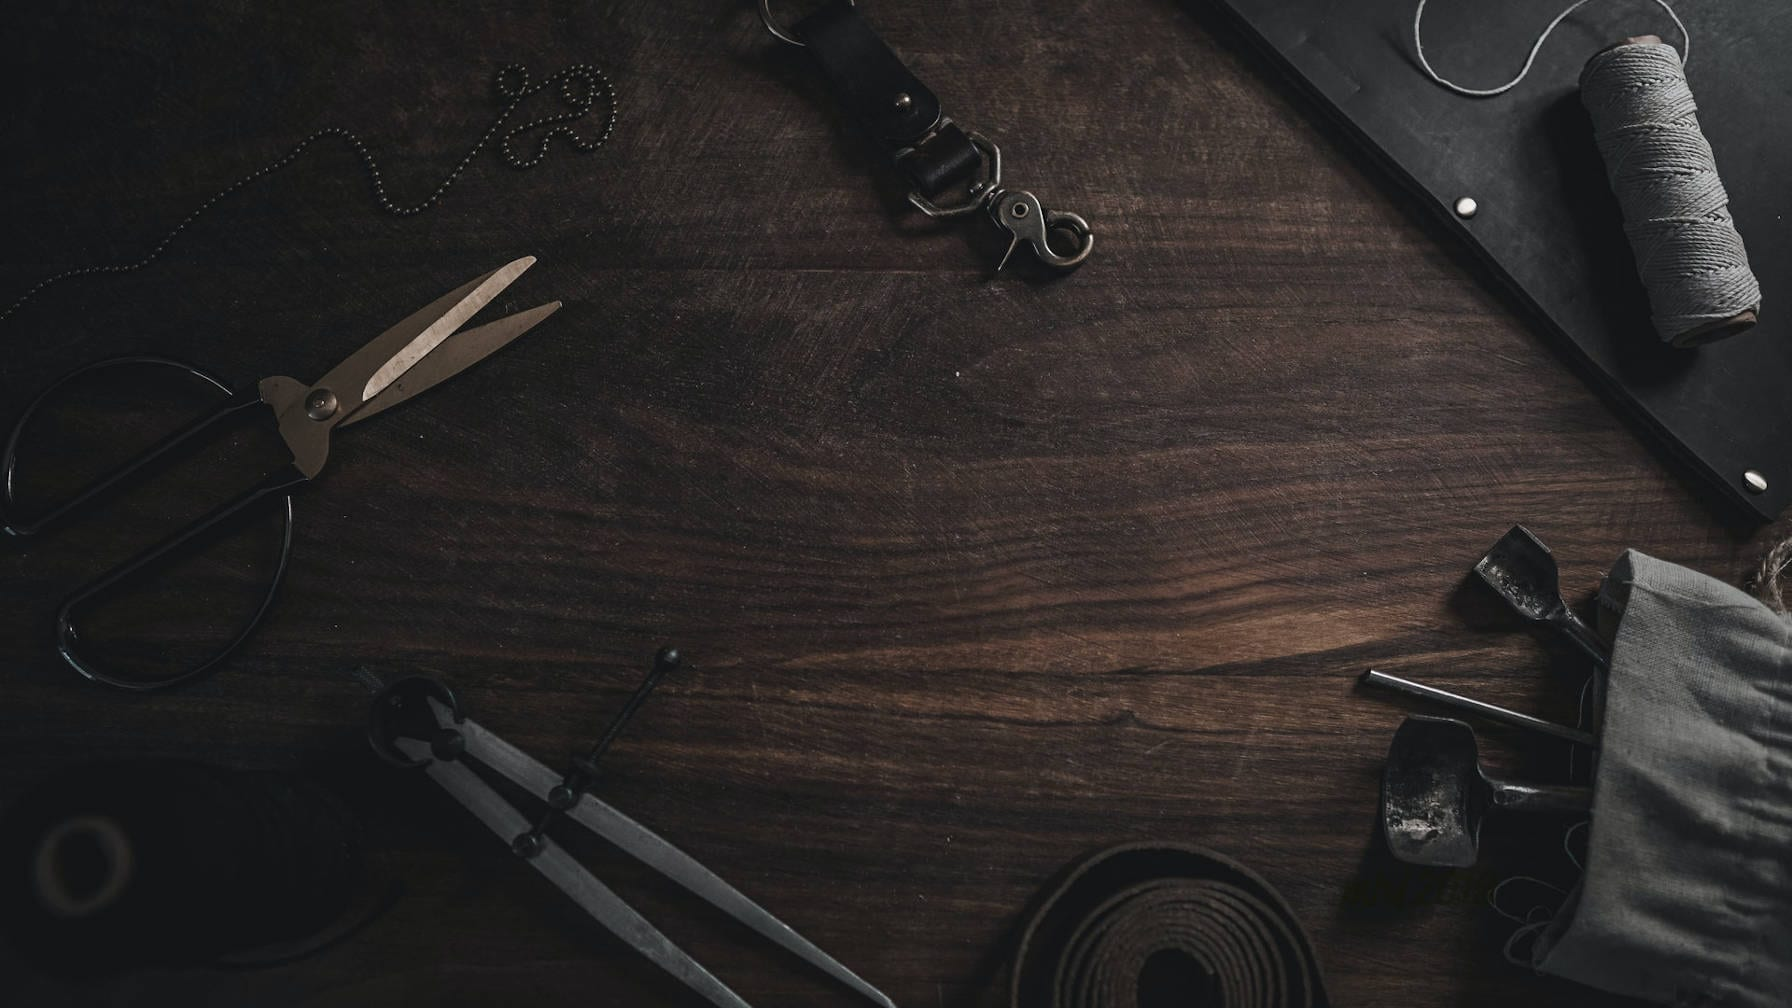 themes-set-up-for-a-paradigm-shift-wordpress-5-8-will-unleash-tools-to-make-it-happen Themes Set Up for a Paradigm Shift, WordPress 5.8 Will Unleash Tools To Make It Happen